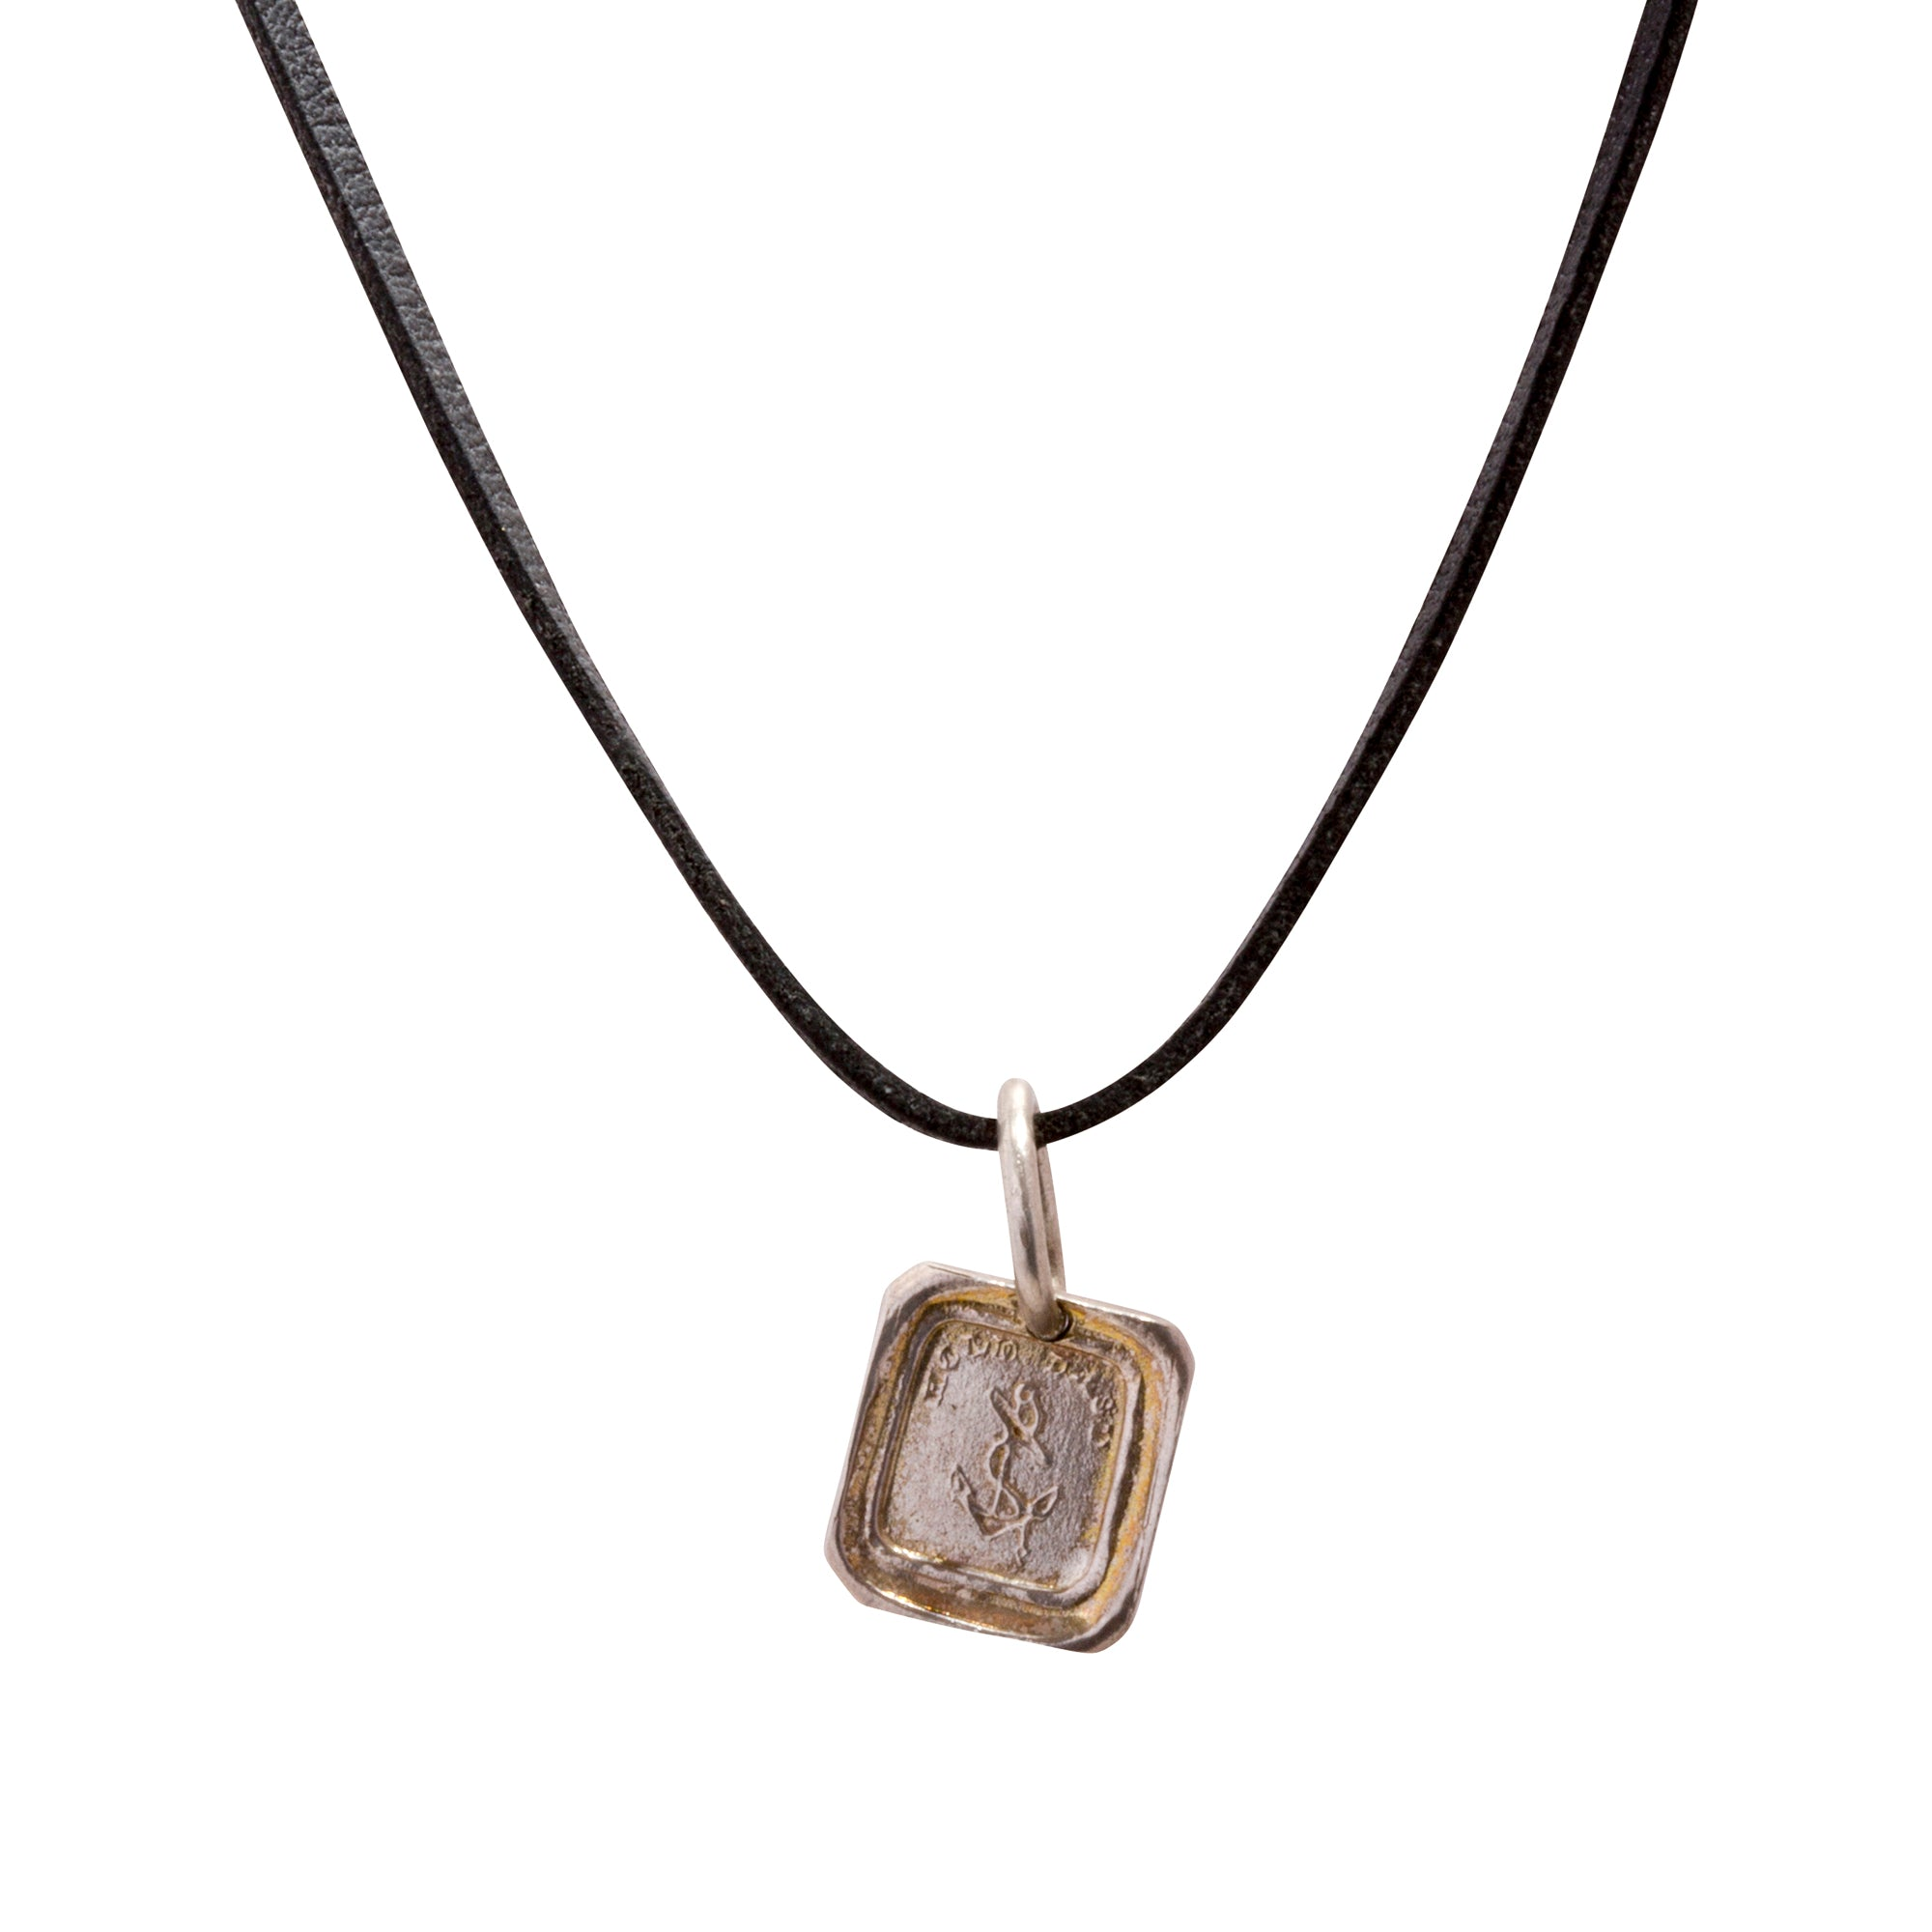 Silver Hold Fast Pendant by James Colarusso for Broken English Jewelry